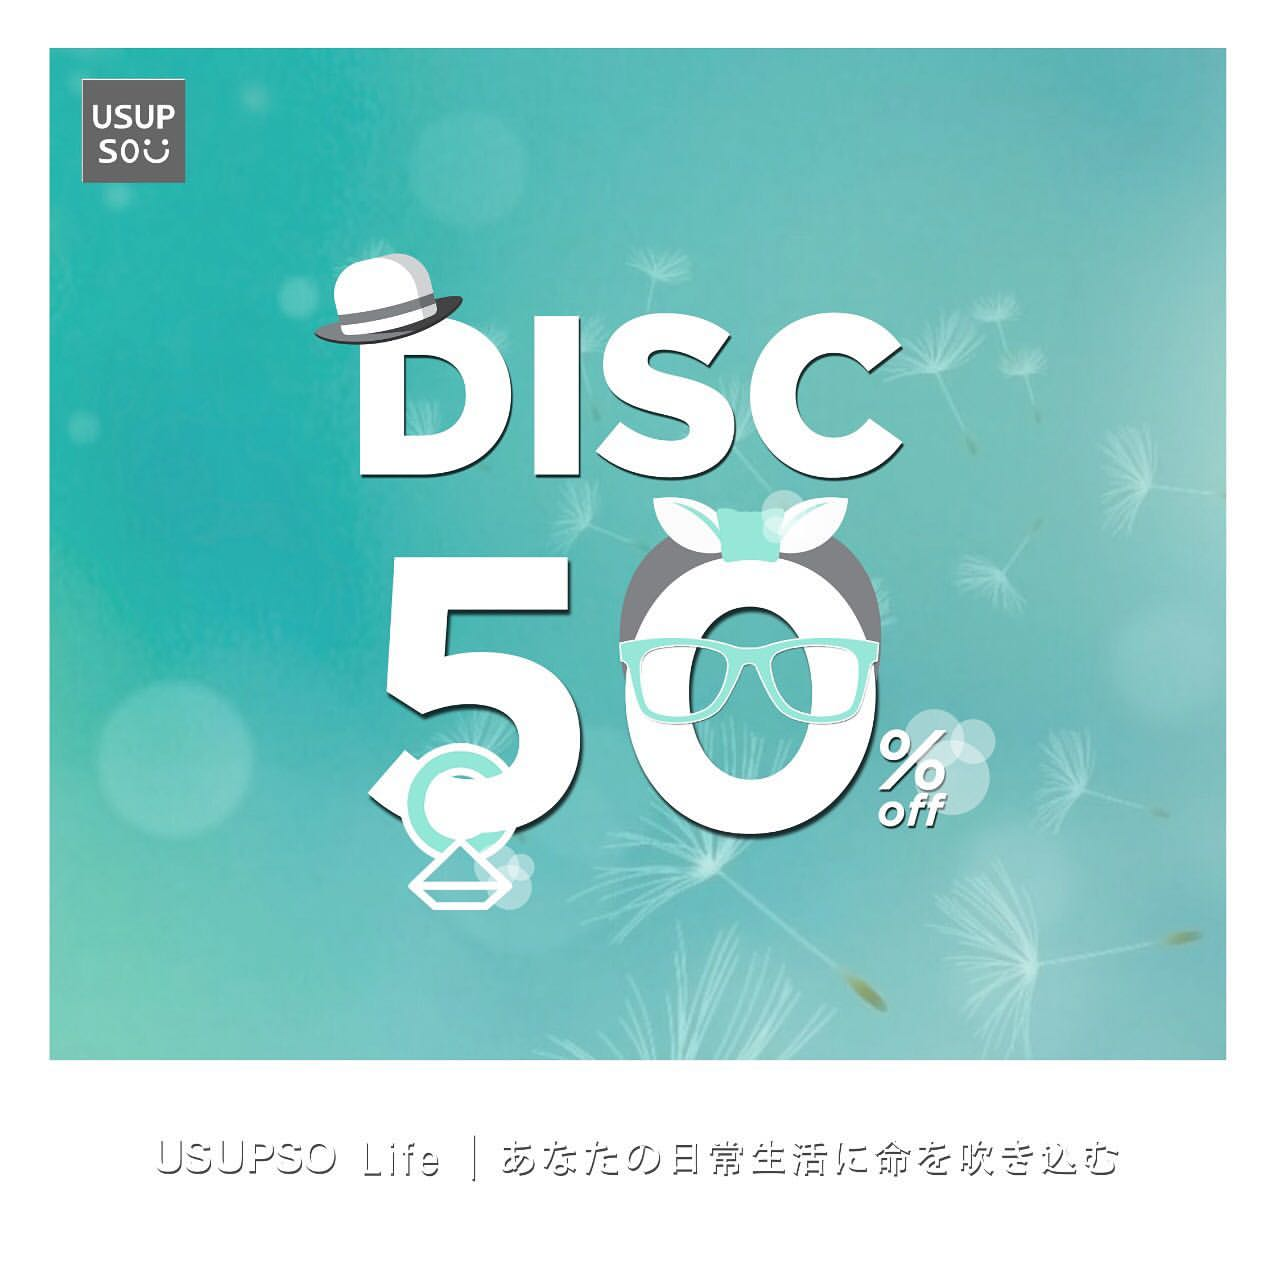 USUPSO Promo Diskon 50% Off & Bag Discount 20% Off